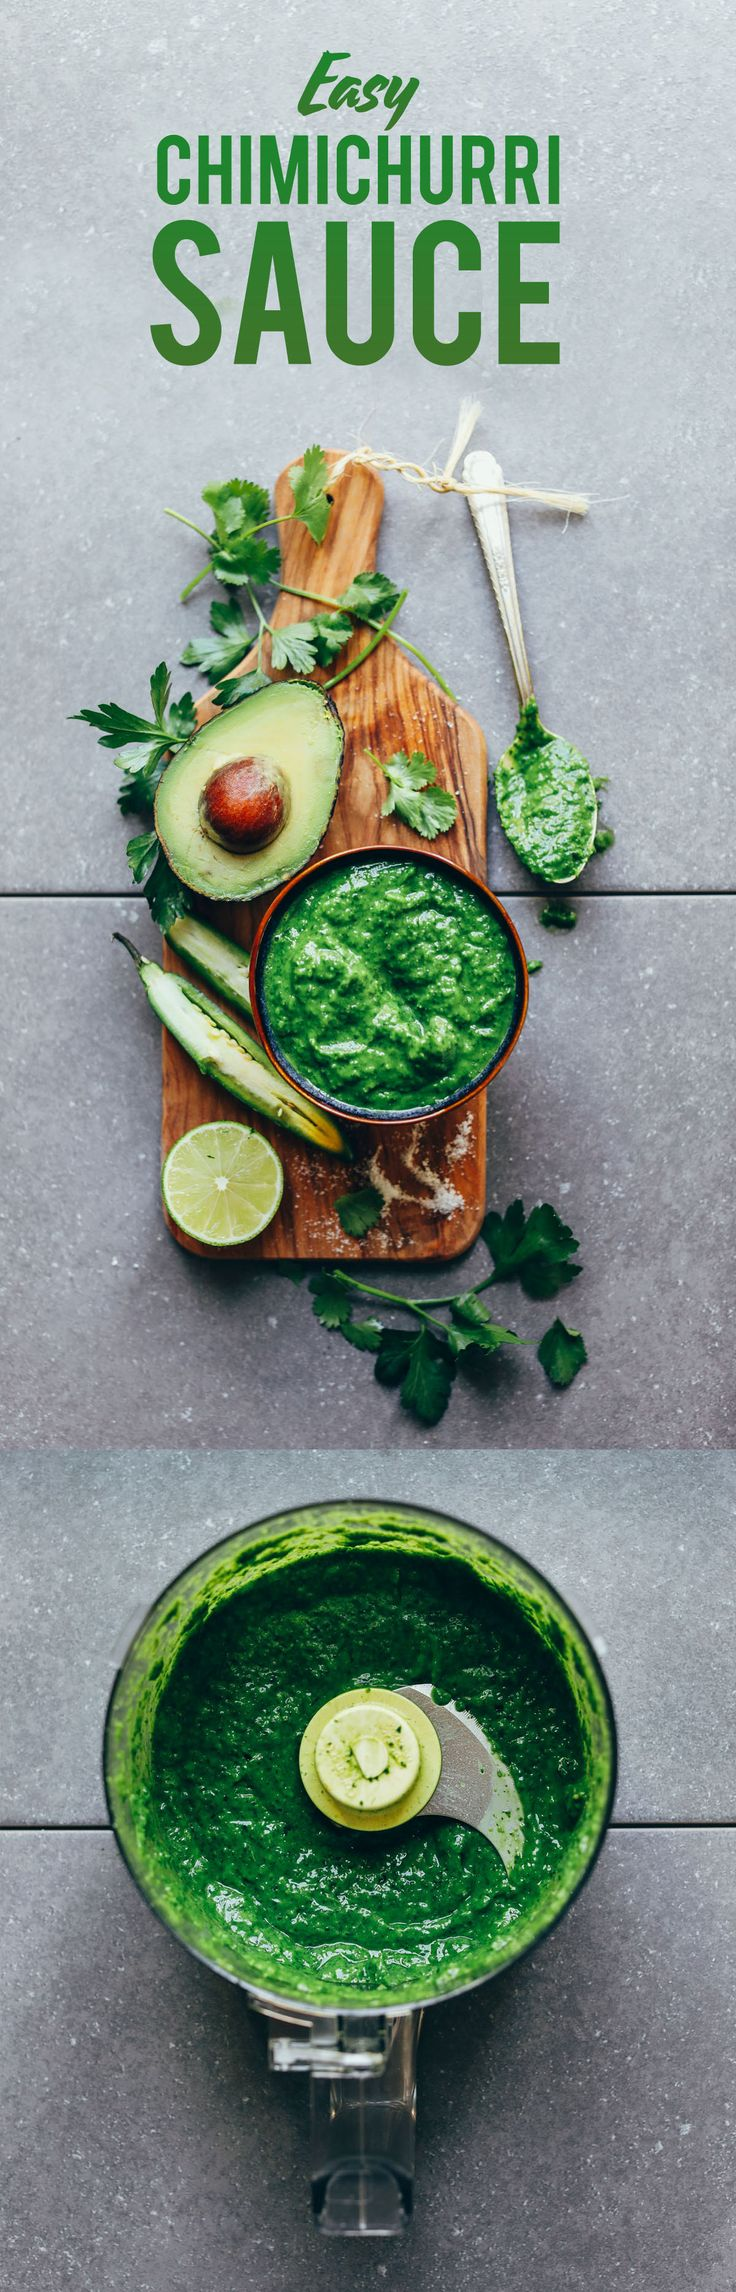 DELICIOUS Green Chimichurri in 10 minutes! The PERFECT dip or spread for any food! #vegan #glutenfree #chimichurri #recipe #minimalistbaker